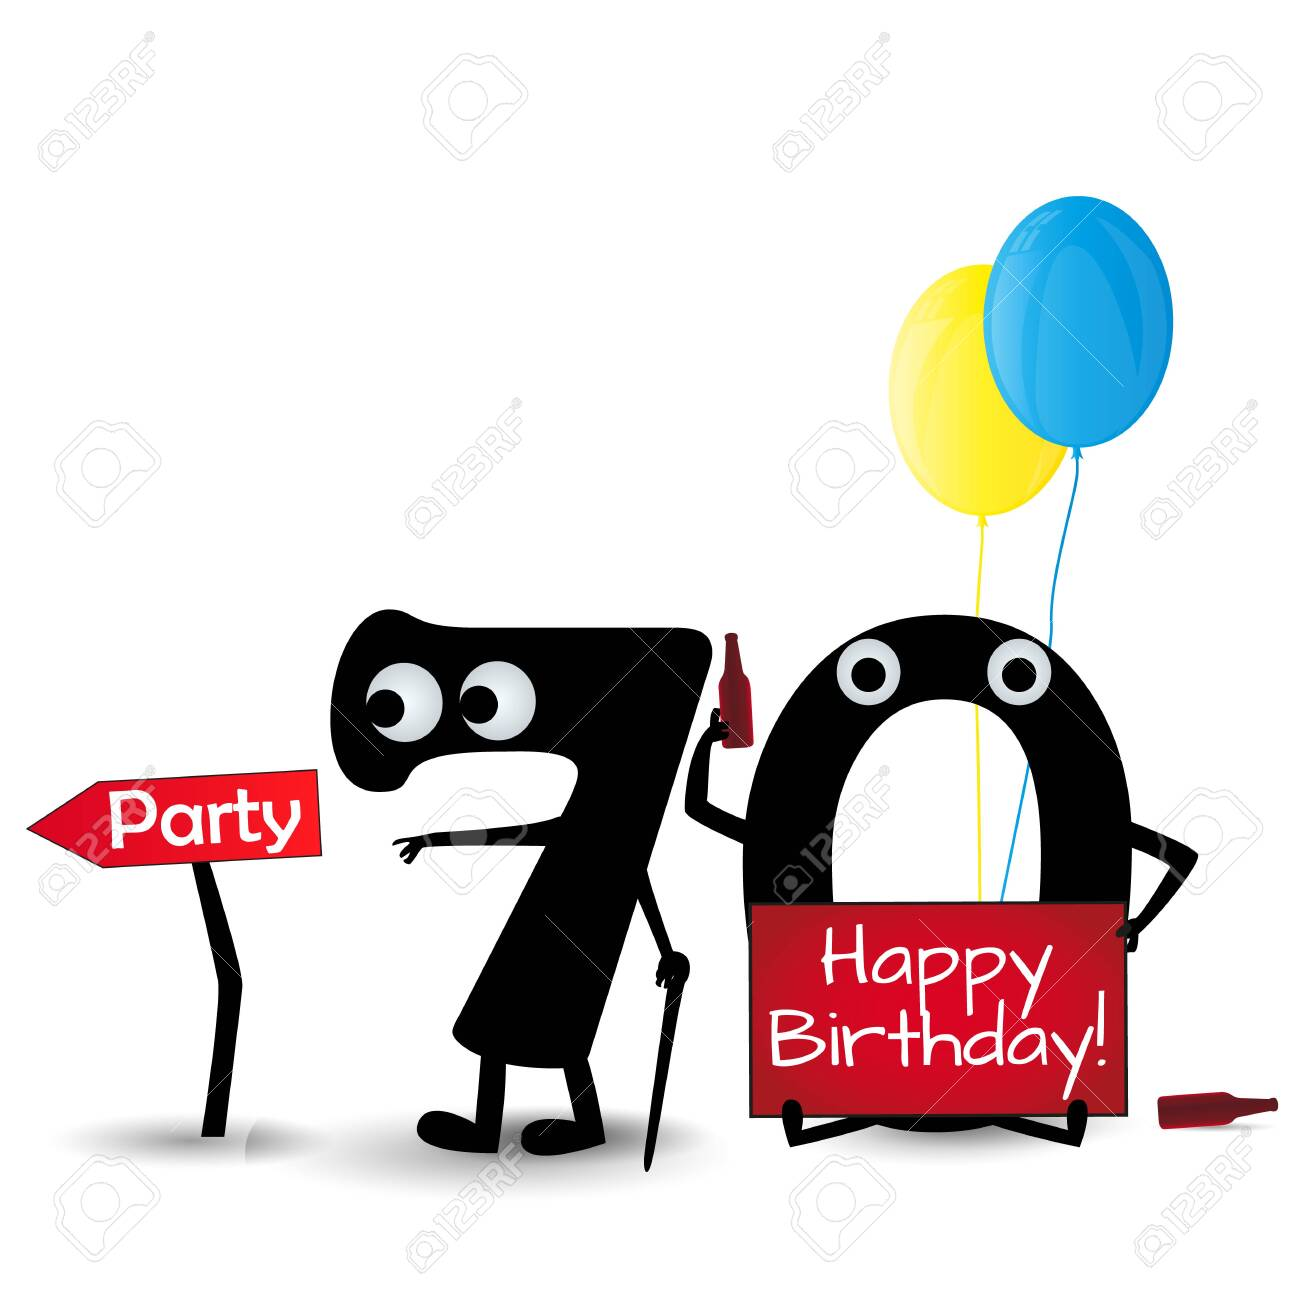 Happy Birthday Card 70 Party Invitation Template Isolated On Royalty Free Cliparts Vectors And Stock Illustration Image 128804943